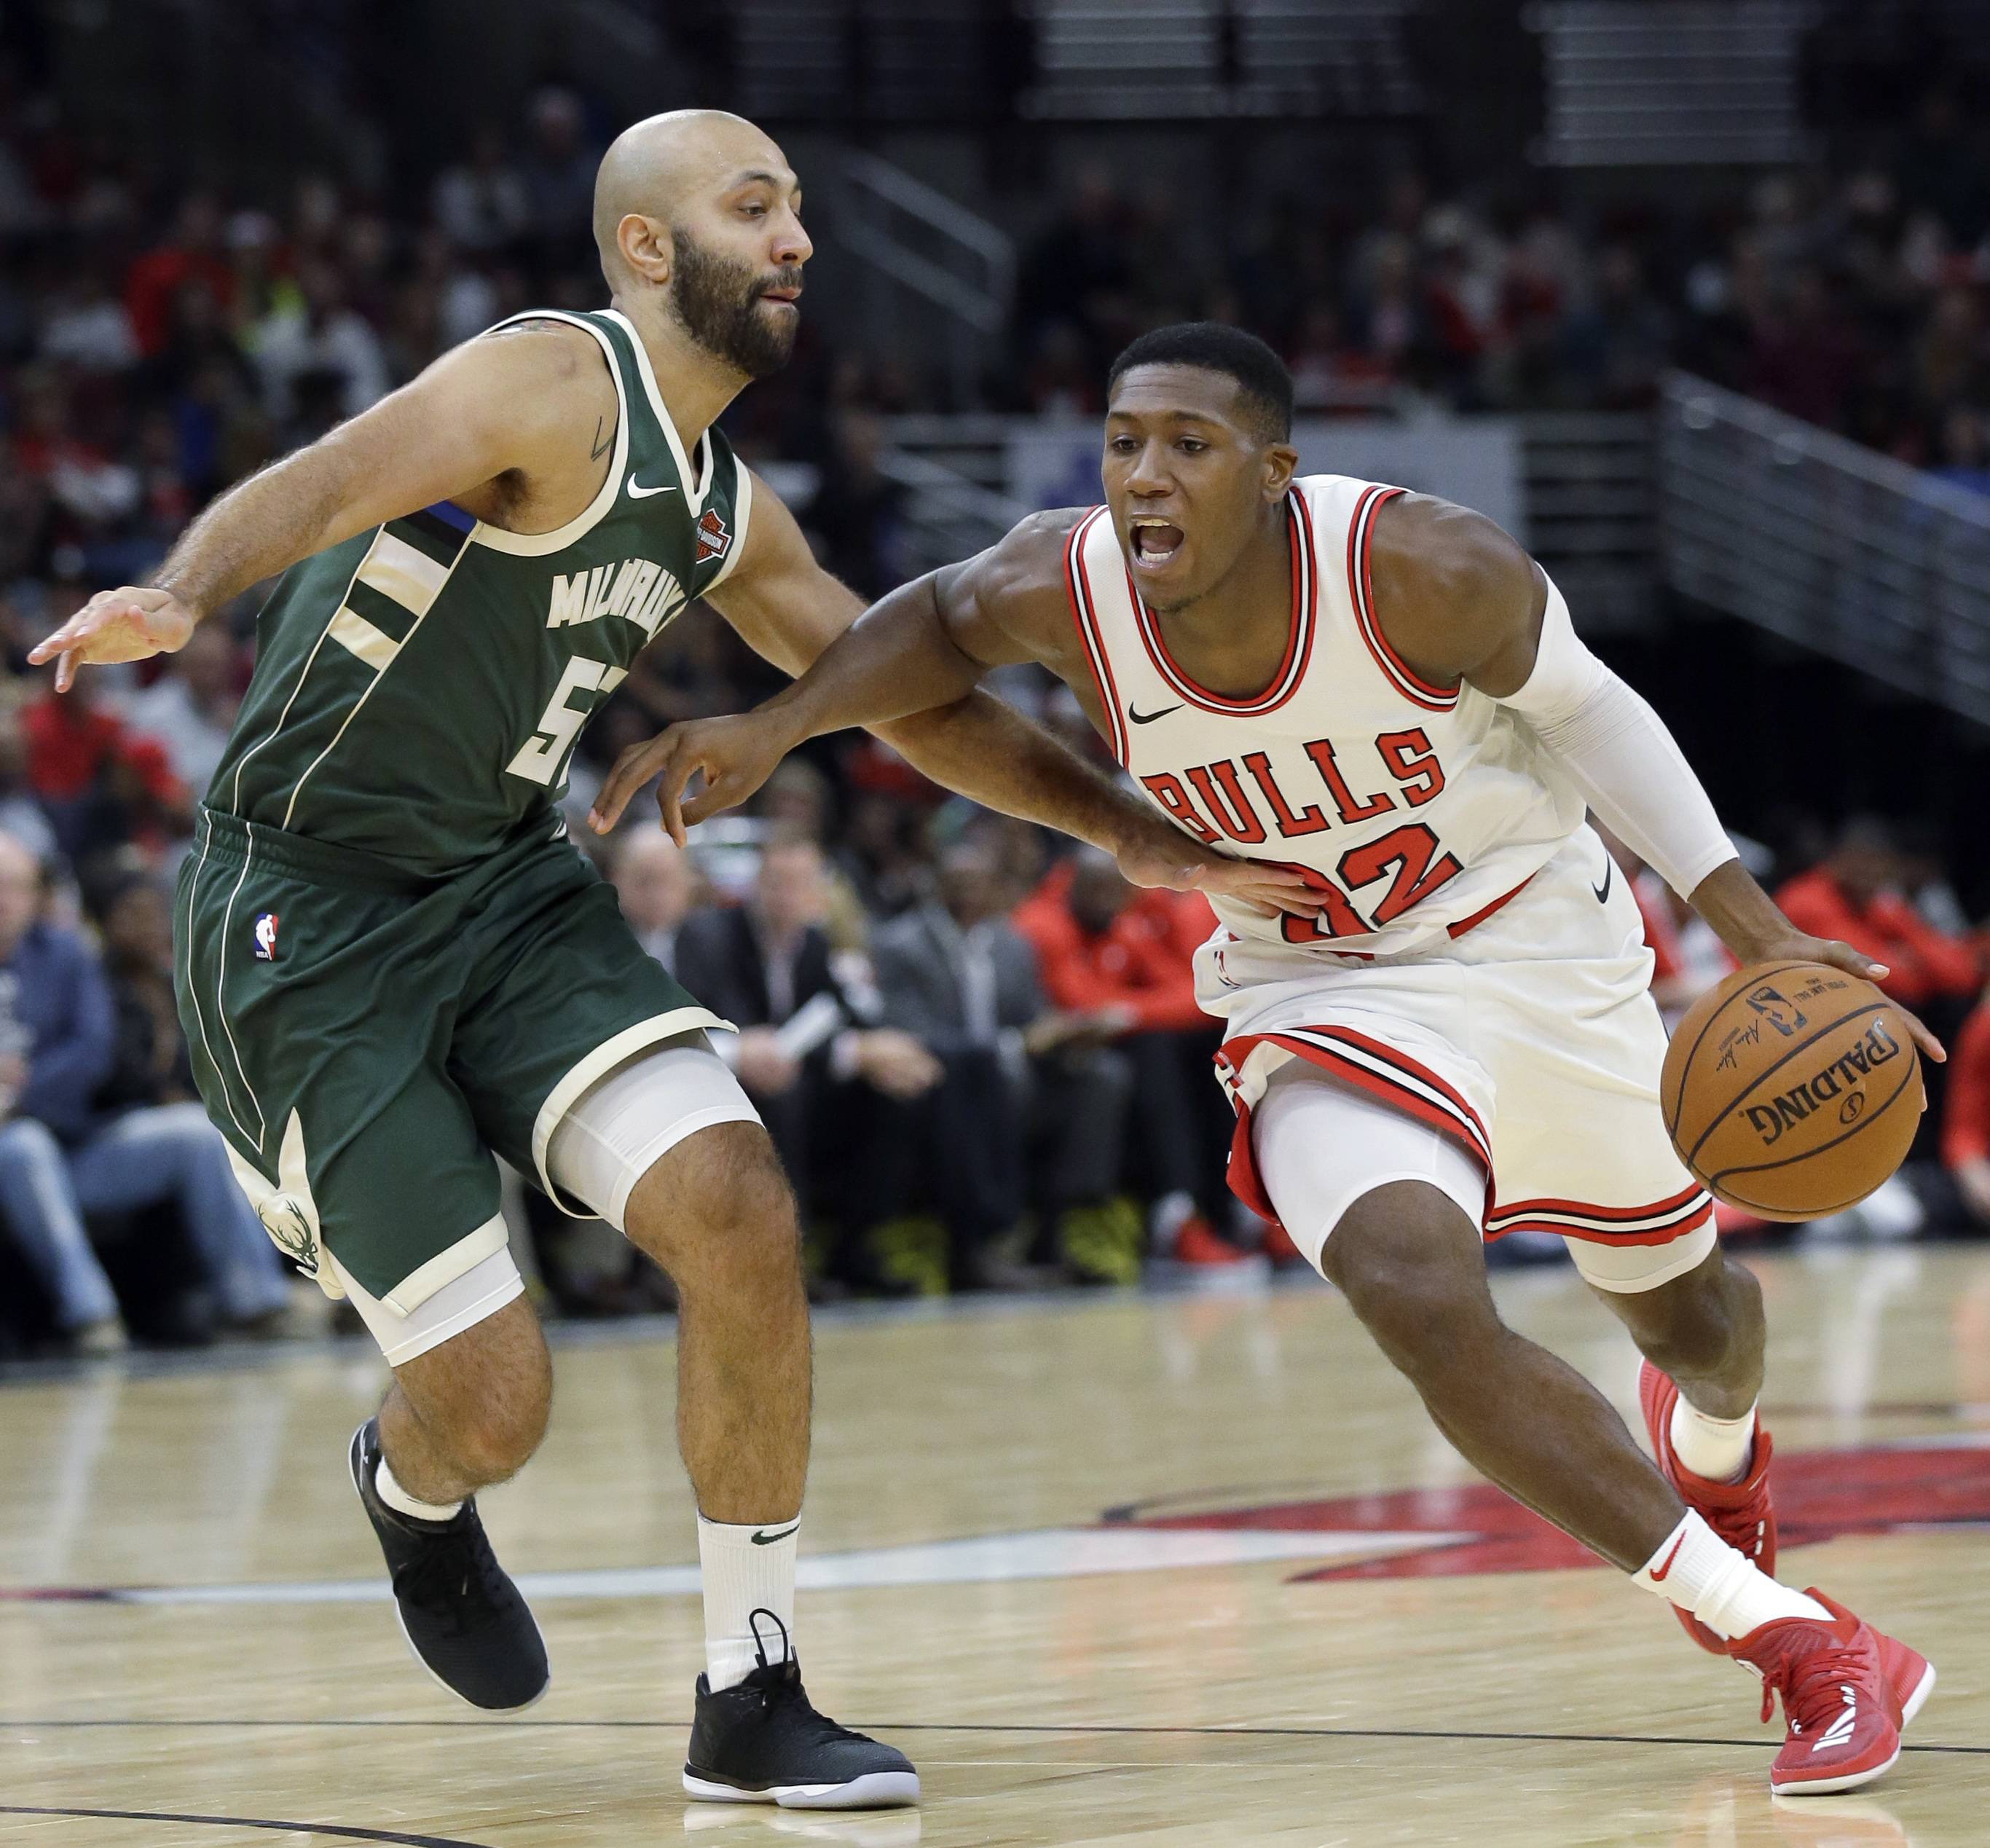 Chicago Bulls guard Kris Dunn will be out 2-4 weeks with a dislocated finger suffered against Milwaukee on Oct. 6.